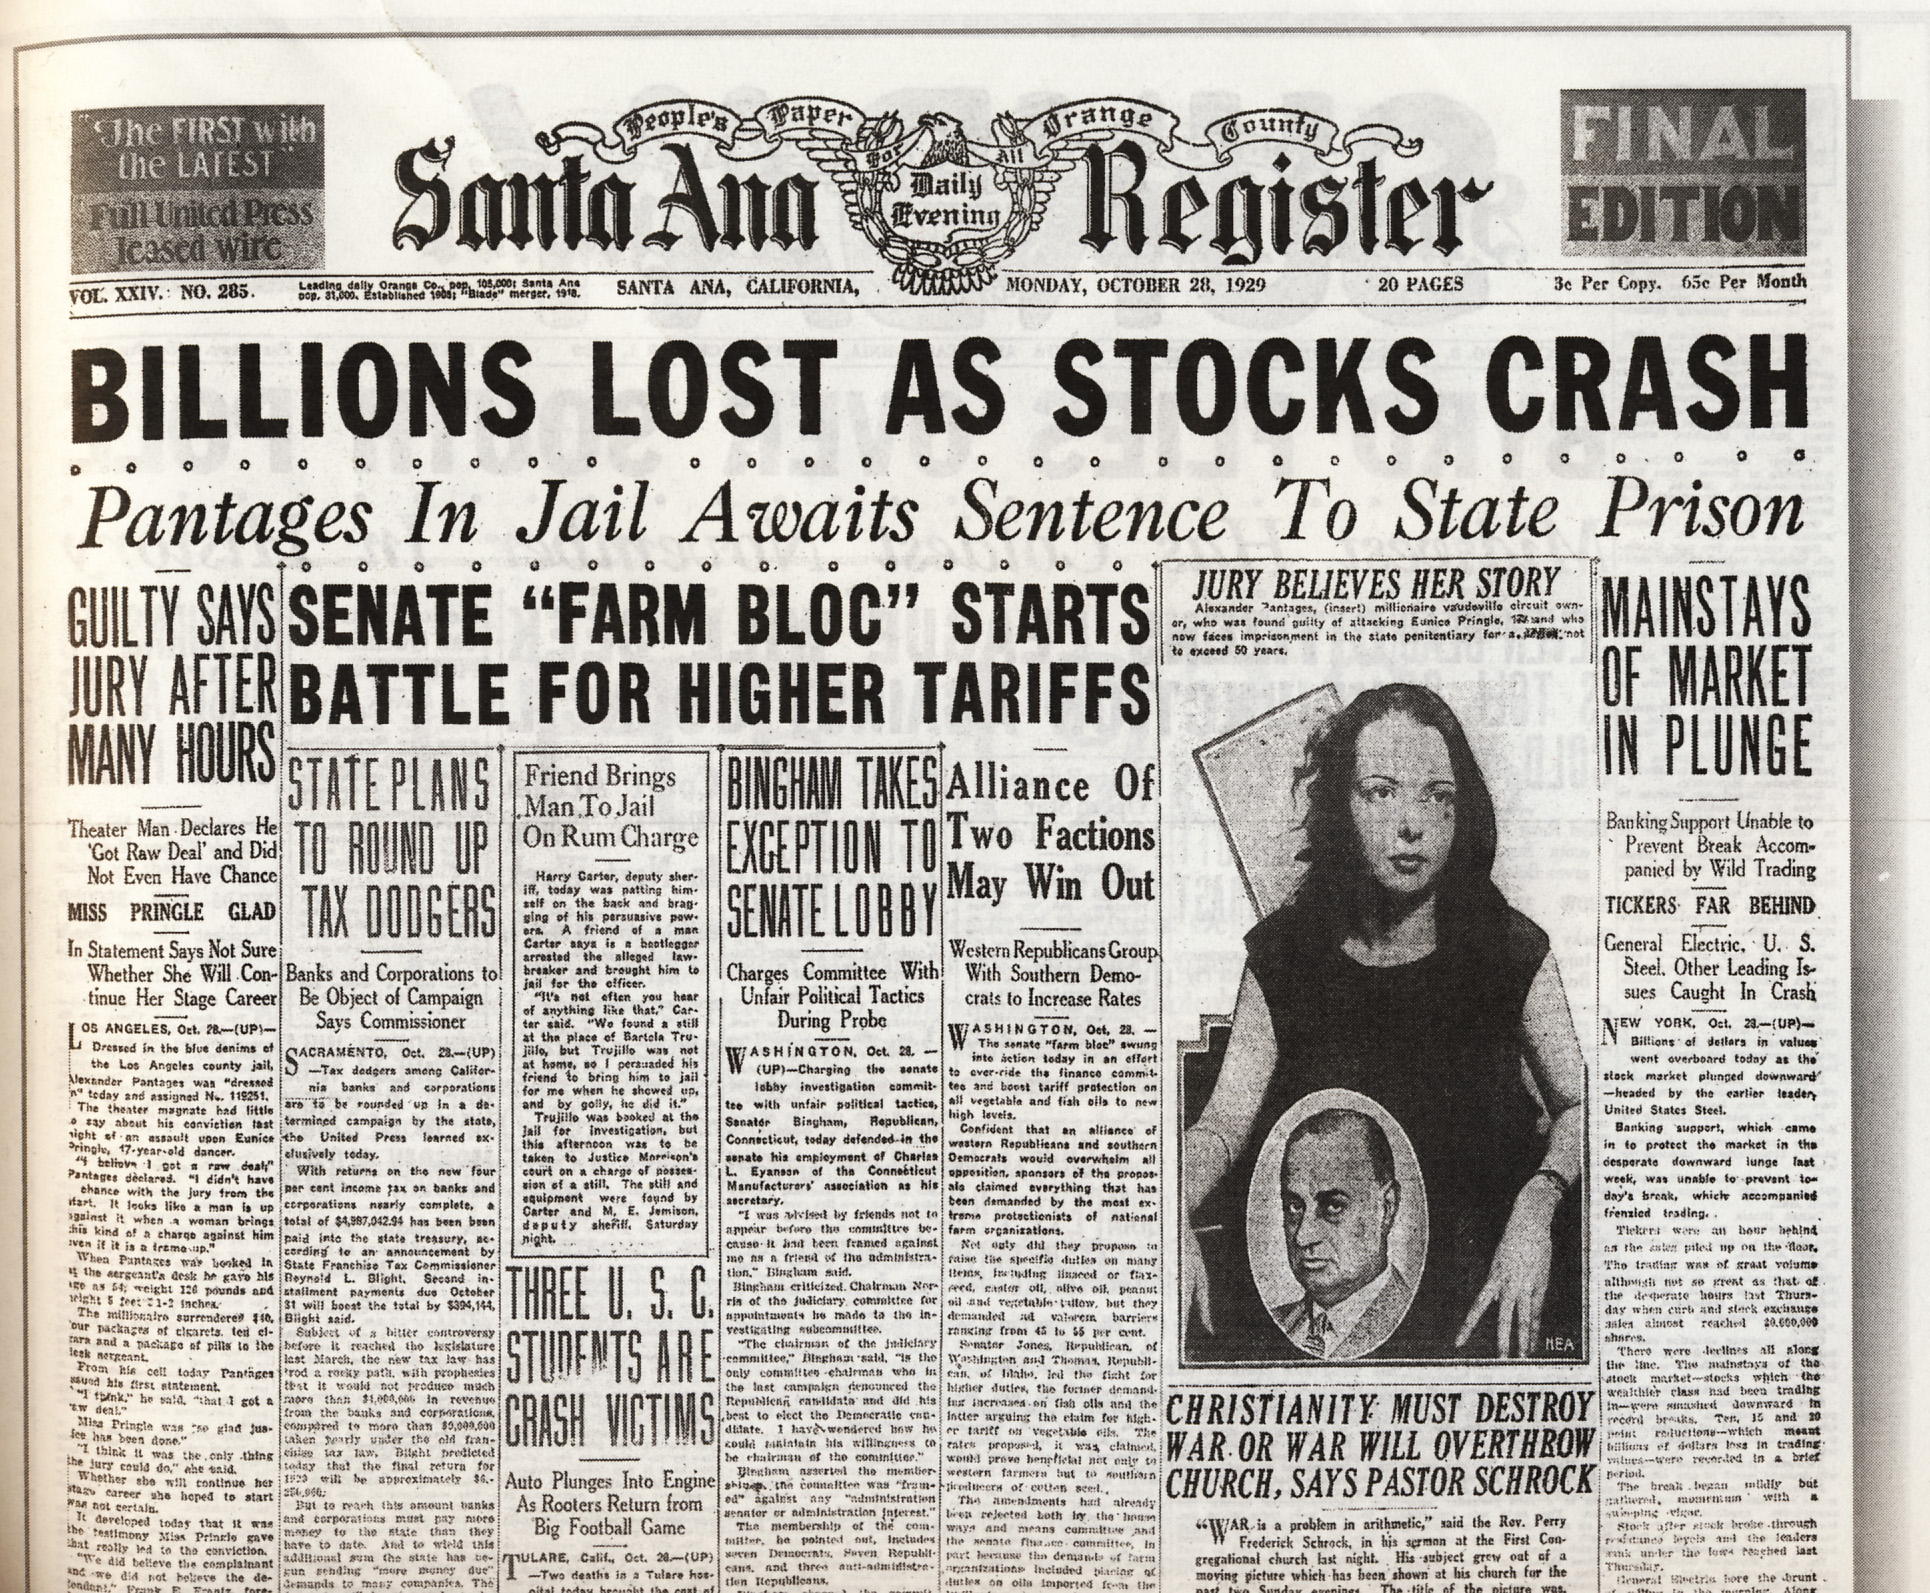 the wall street crash of 1929 The relationship of the wall street crash and the great depression 985 words | 4 pages the relationship of the wall street crash and the great depression in this essay i will be explaining the causes of the great depression the wall street crash was the drop in share prices in 1929the great depression was the period in the 1930's when the usa and other countries like germany suffered a .